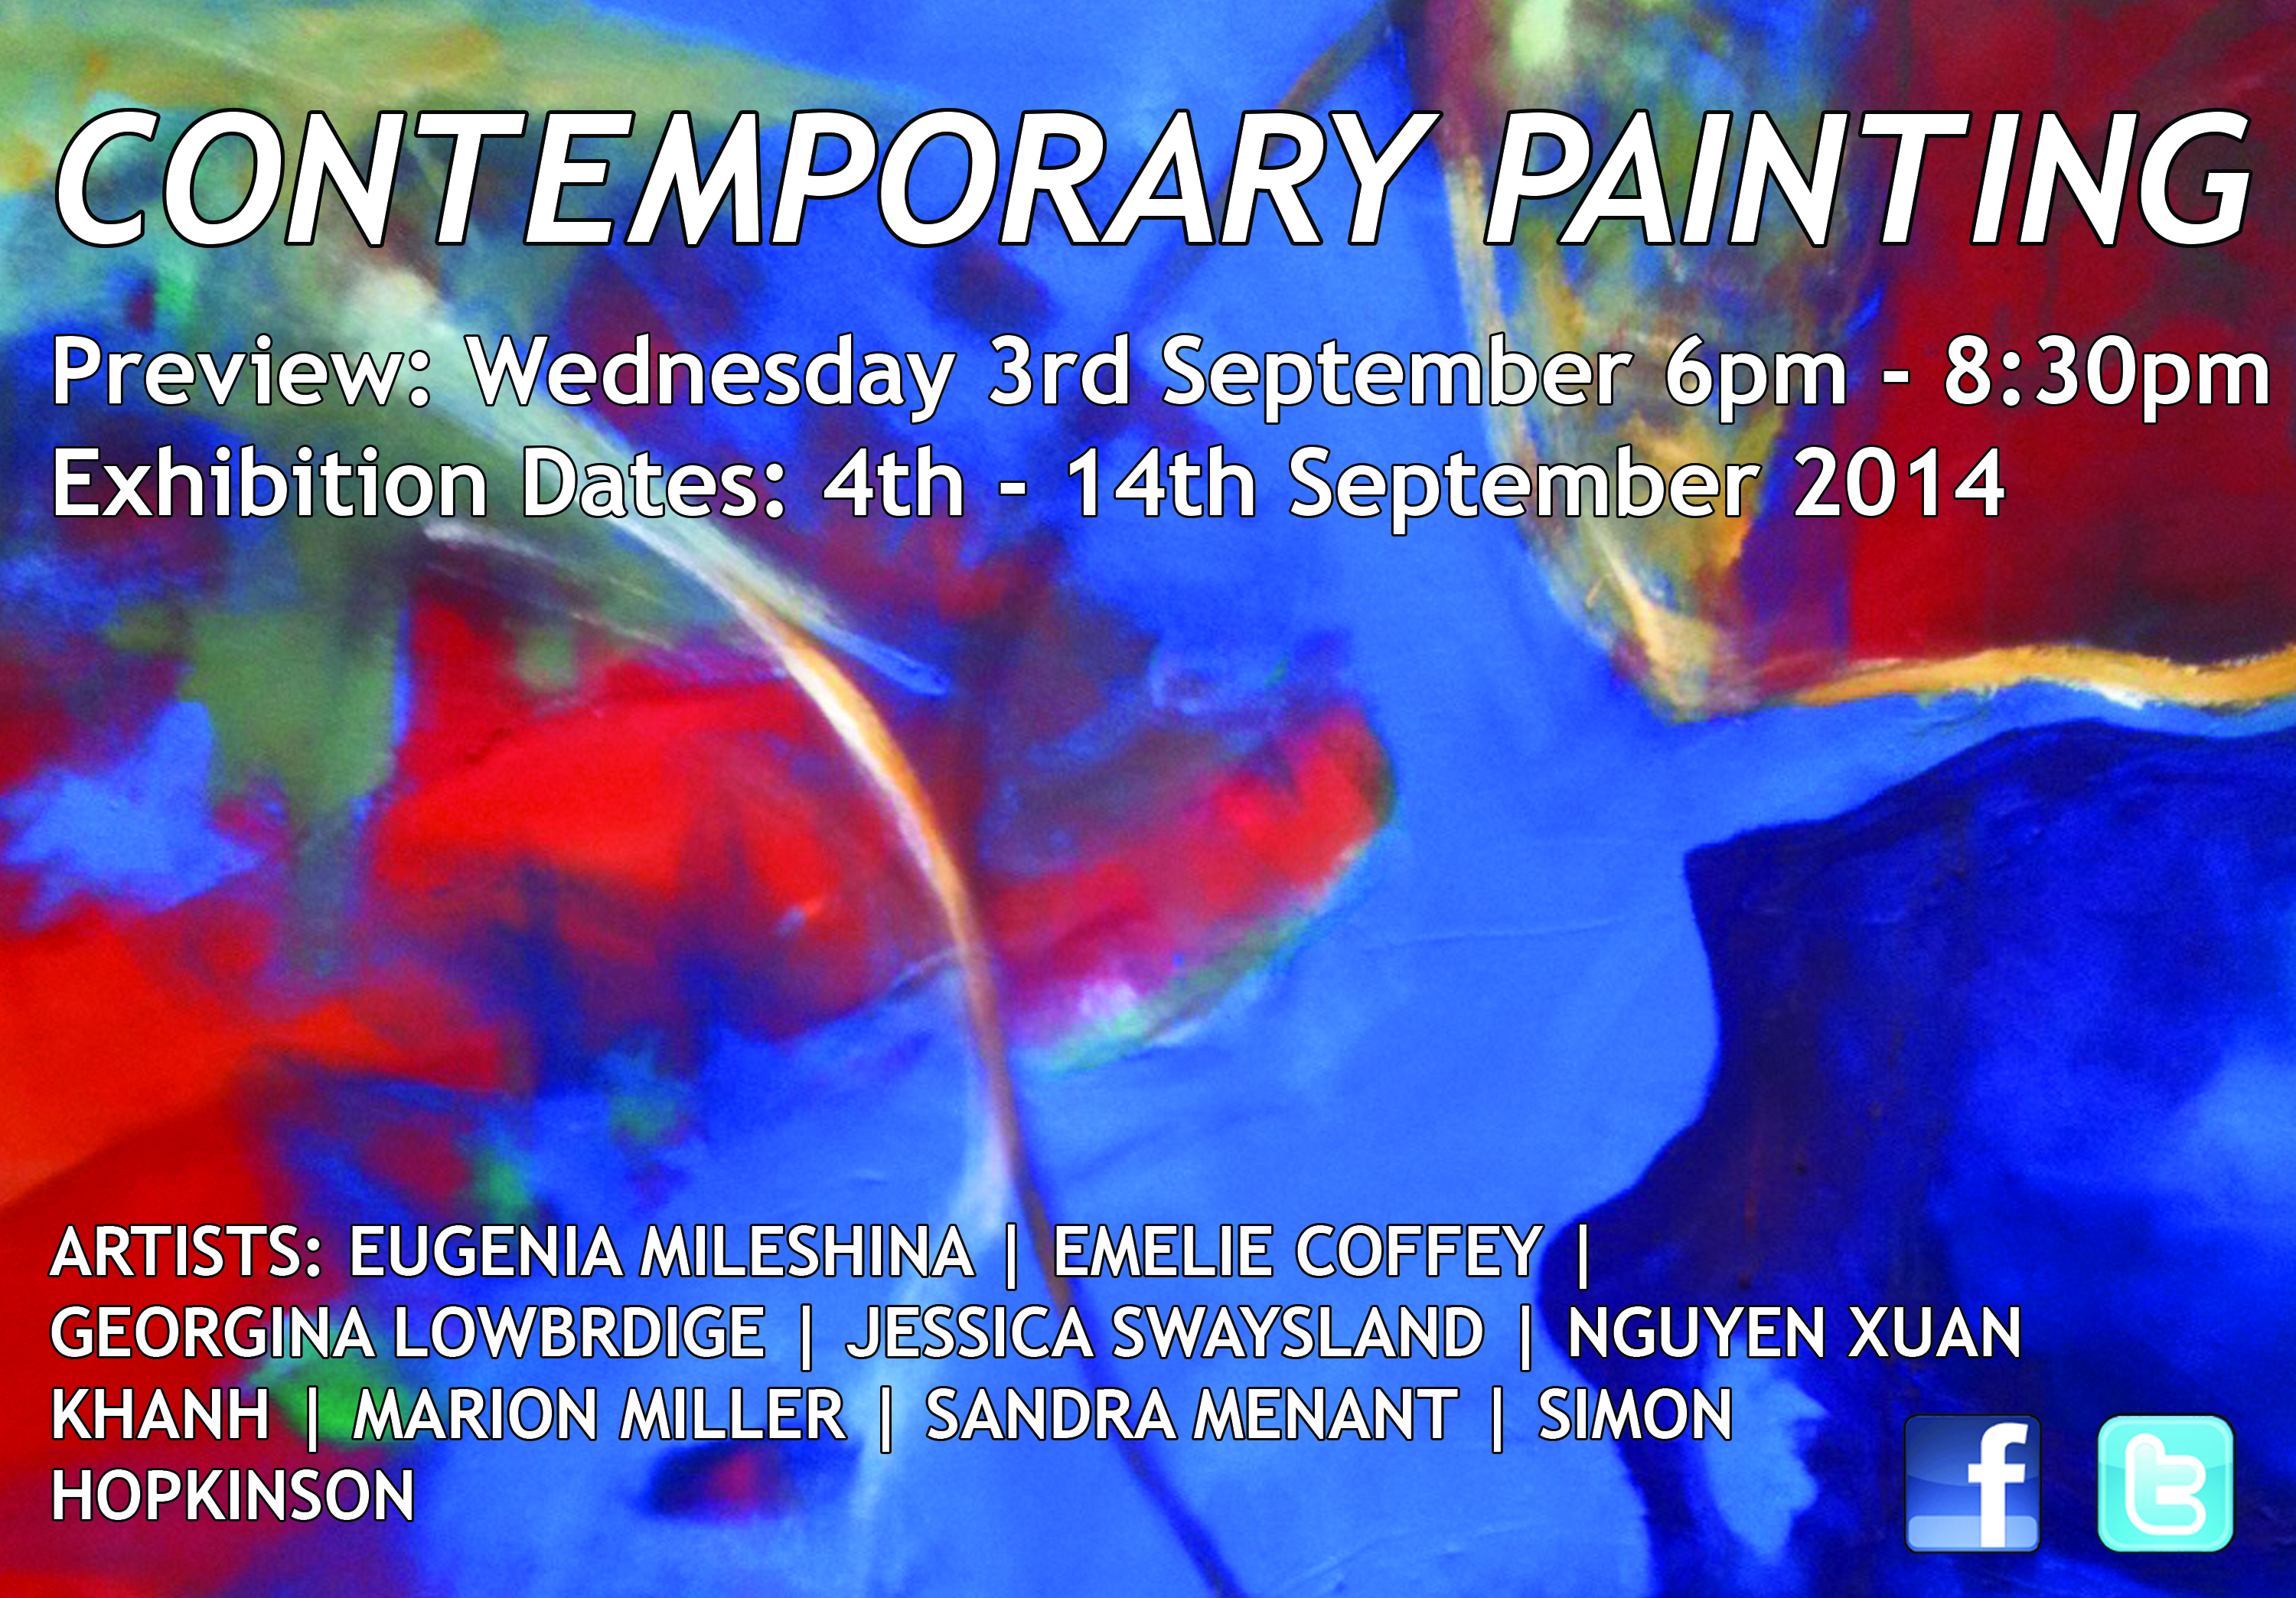 CONTEMPORARY PAINTING facebook flyer (5)